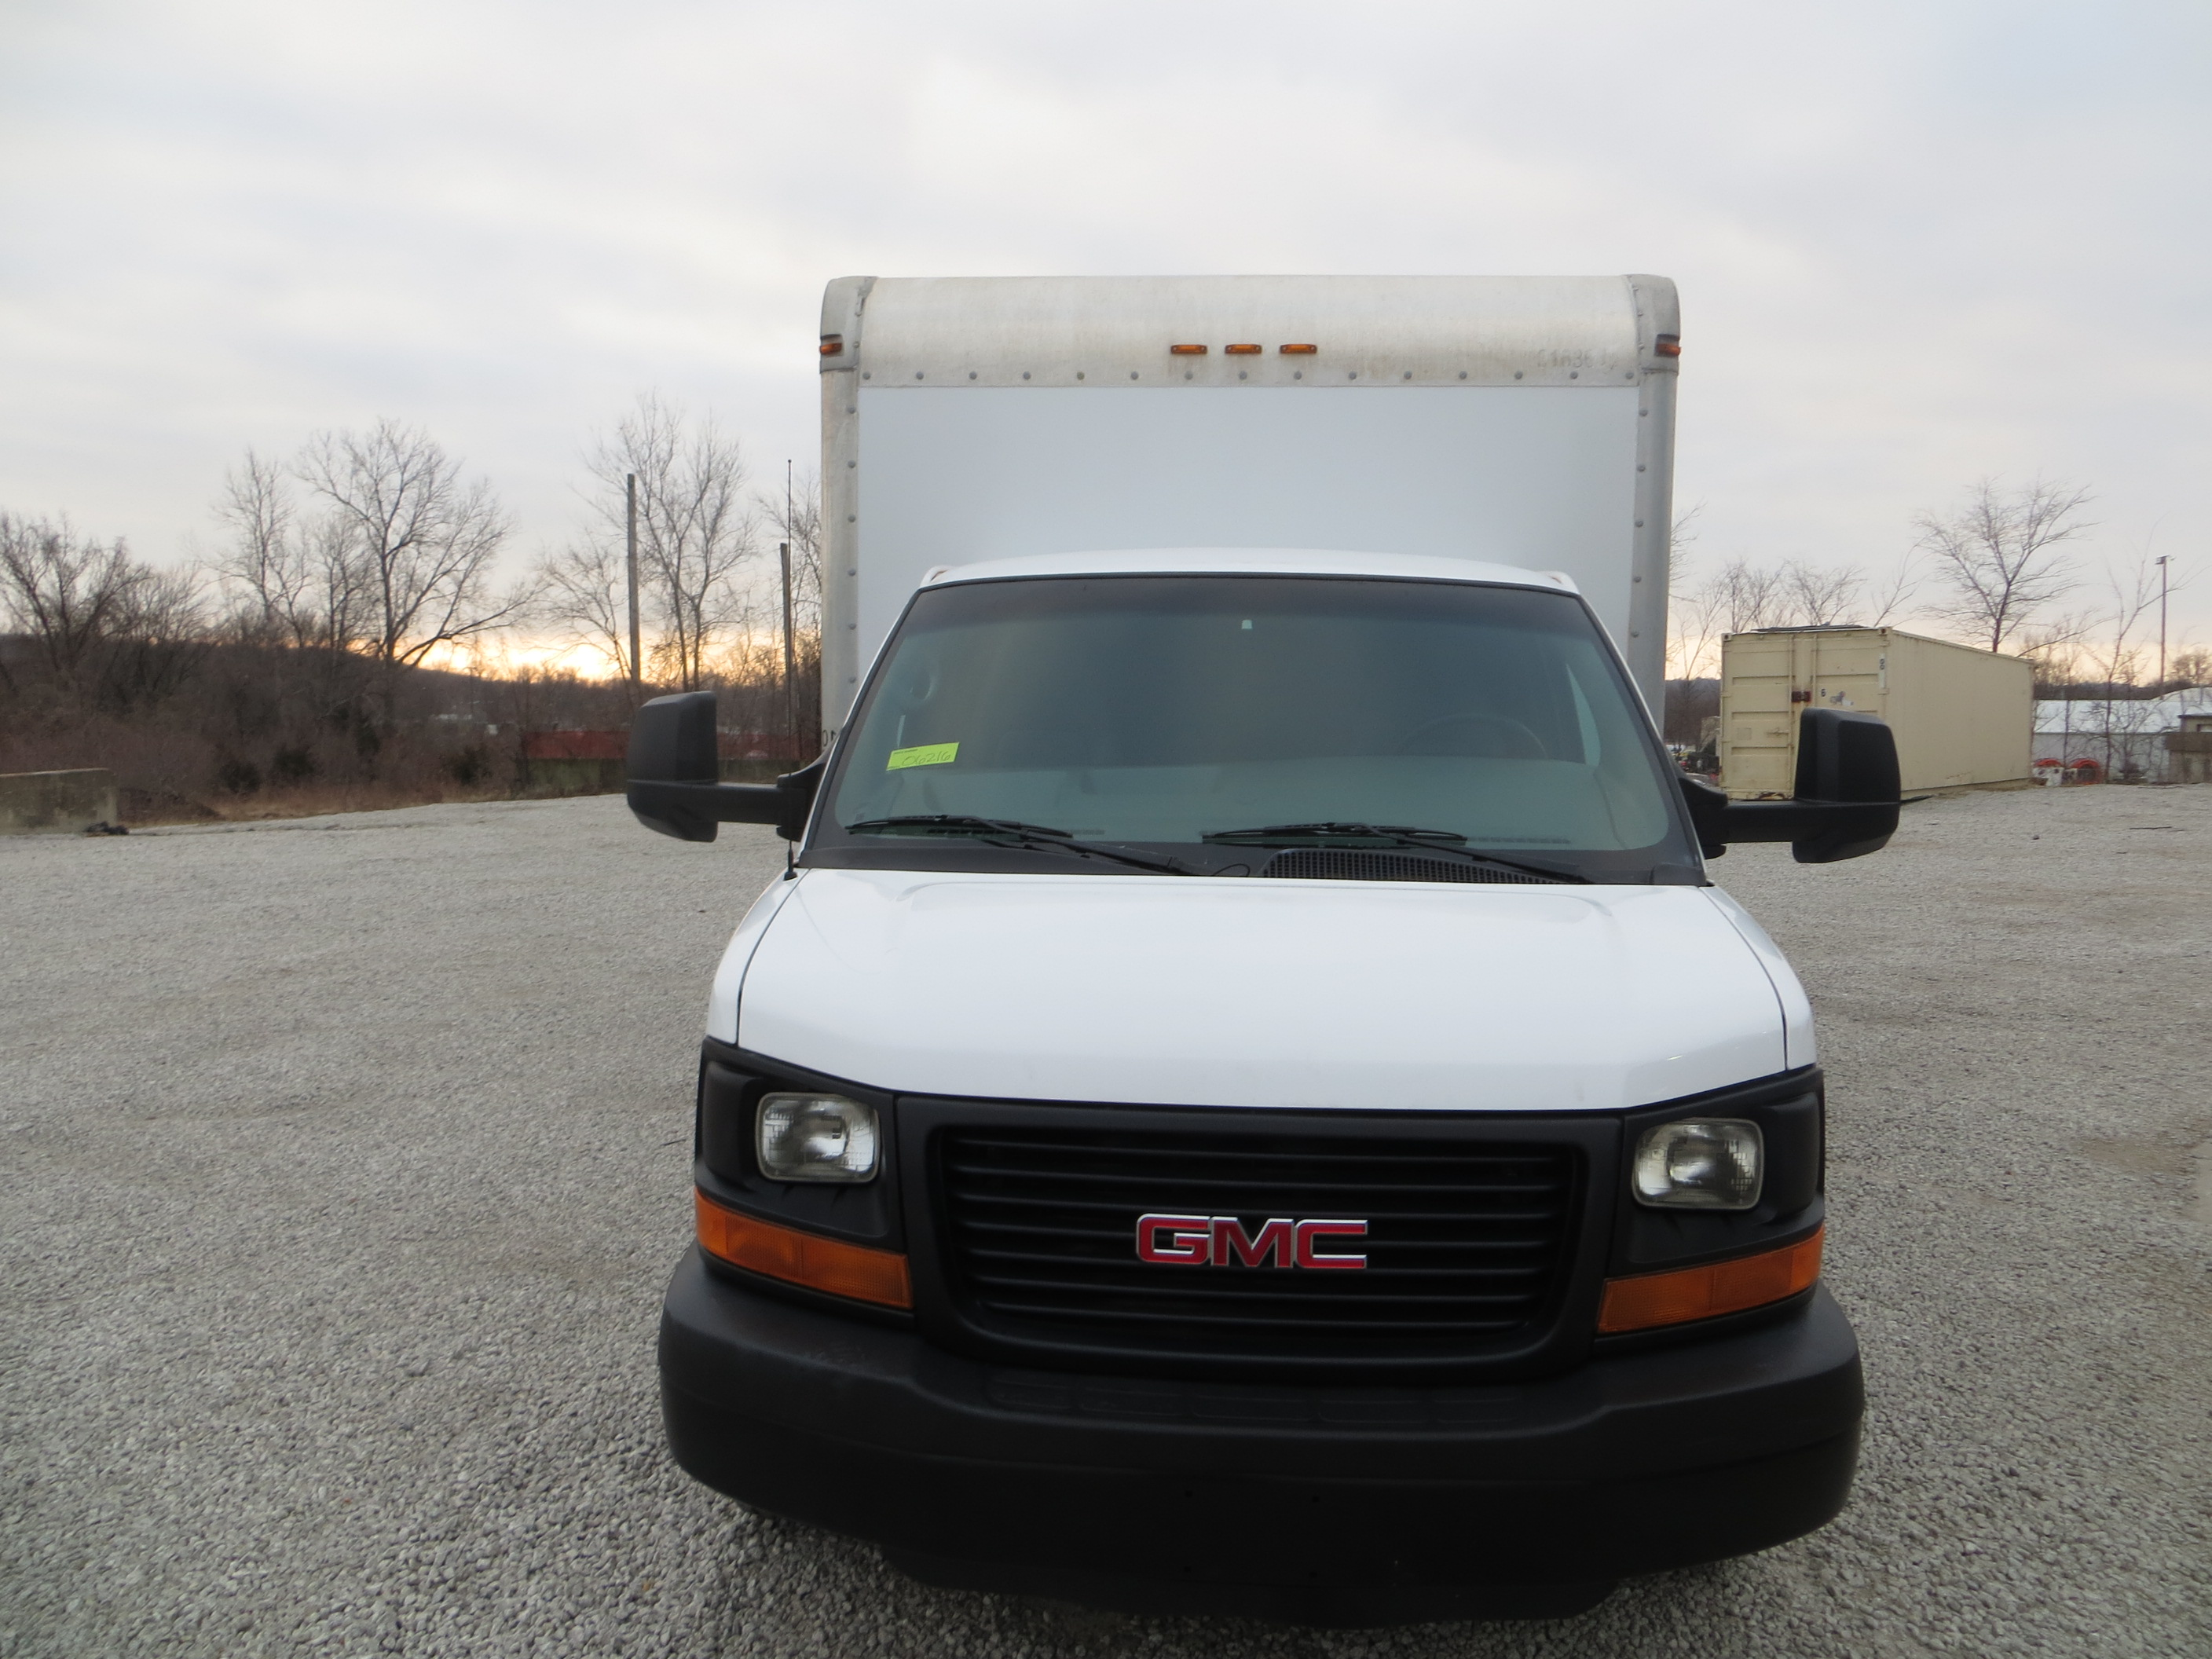 large image of 2012 GMC 16 Ft. Box Truck